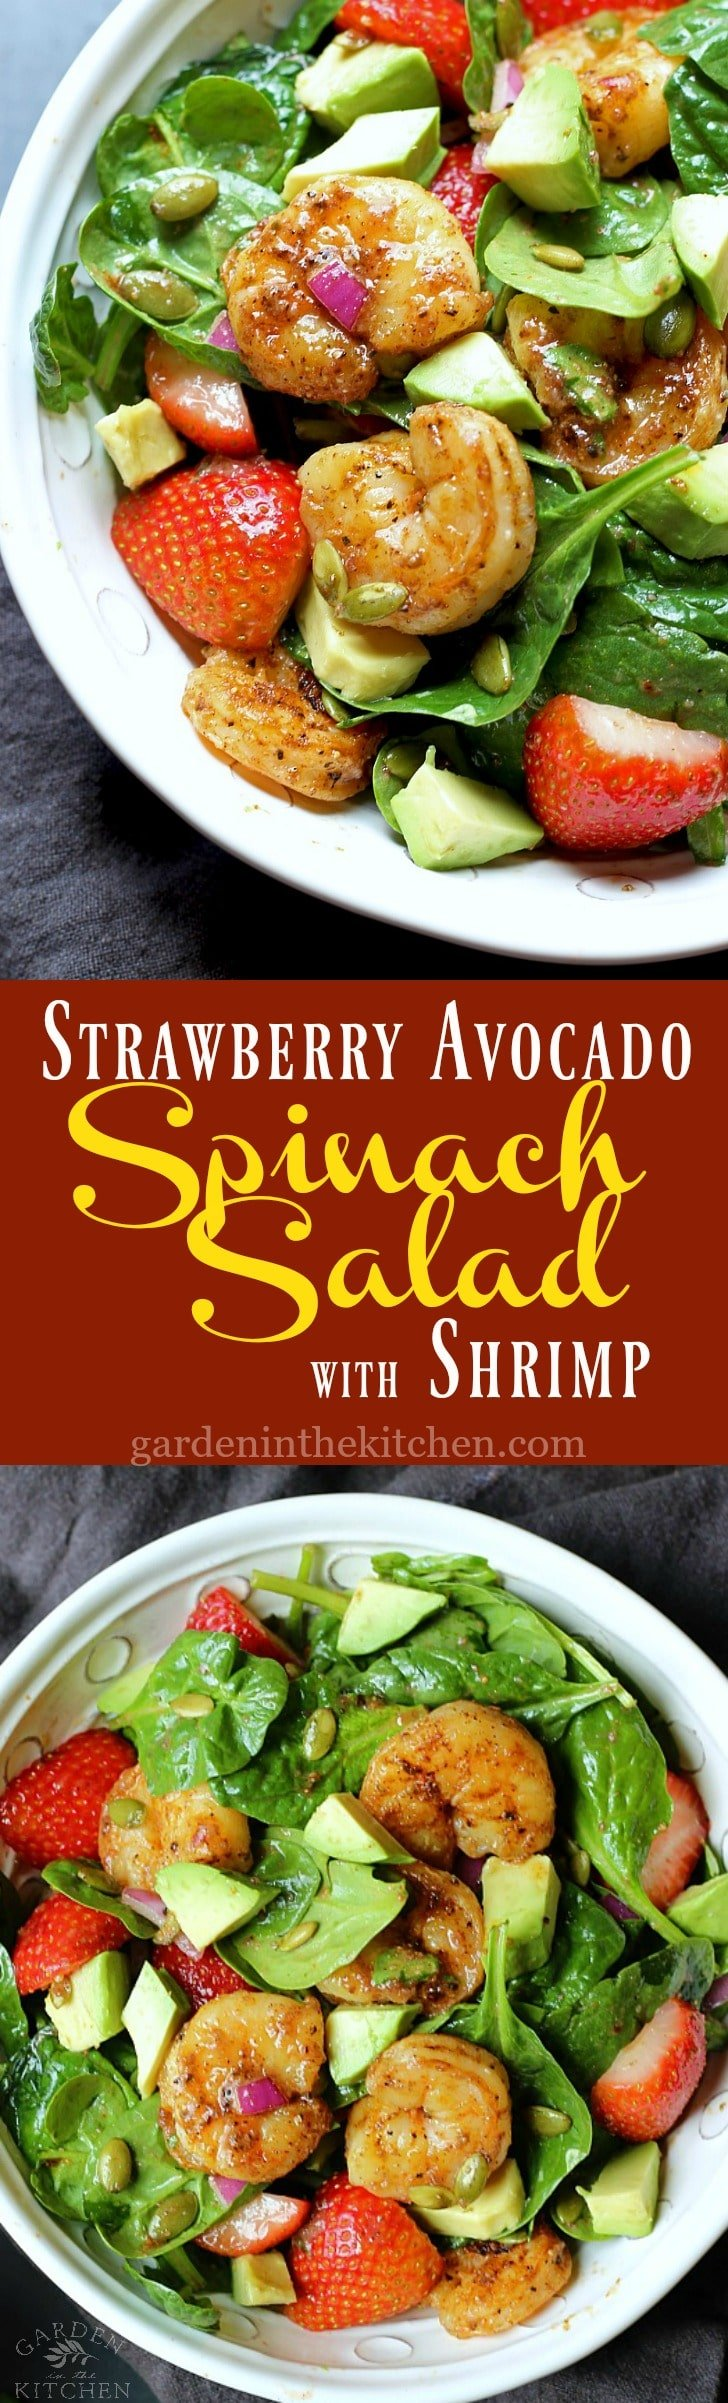 Strawberry Avocado Spinach Salad with Shrimp